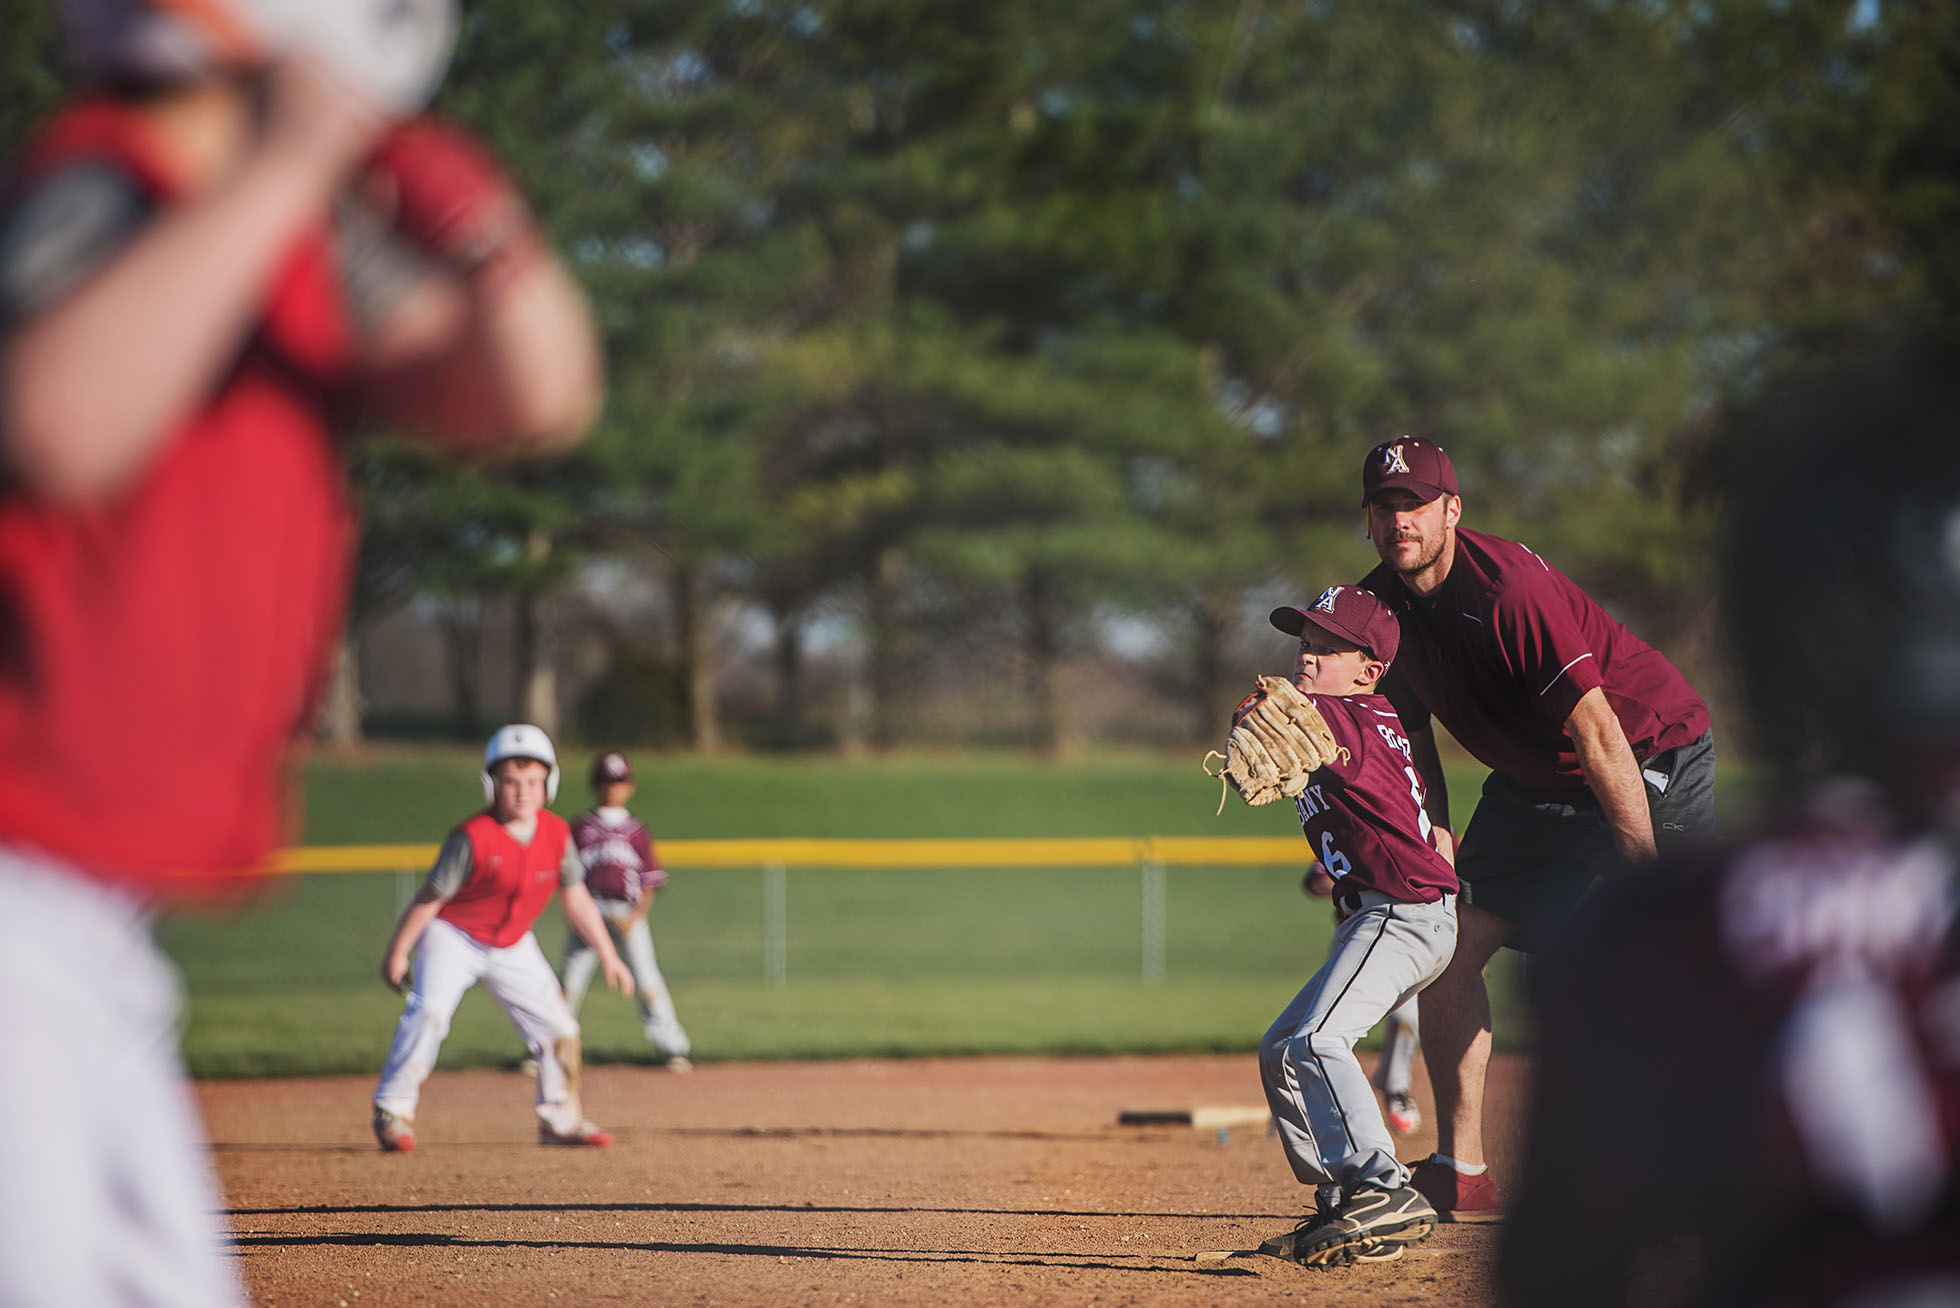 boy pitching baseball with coach behind him freezing motion kellie bieser